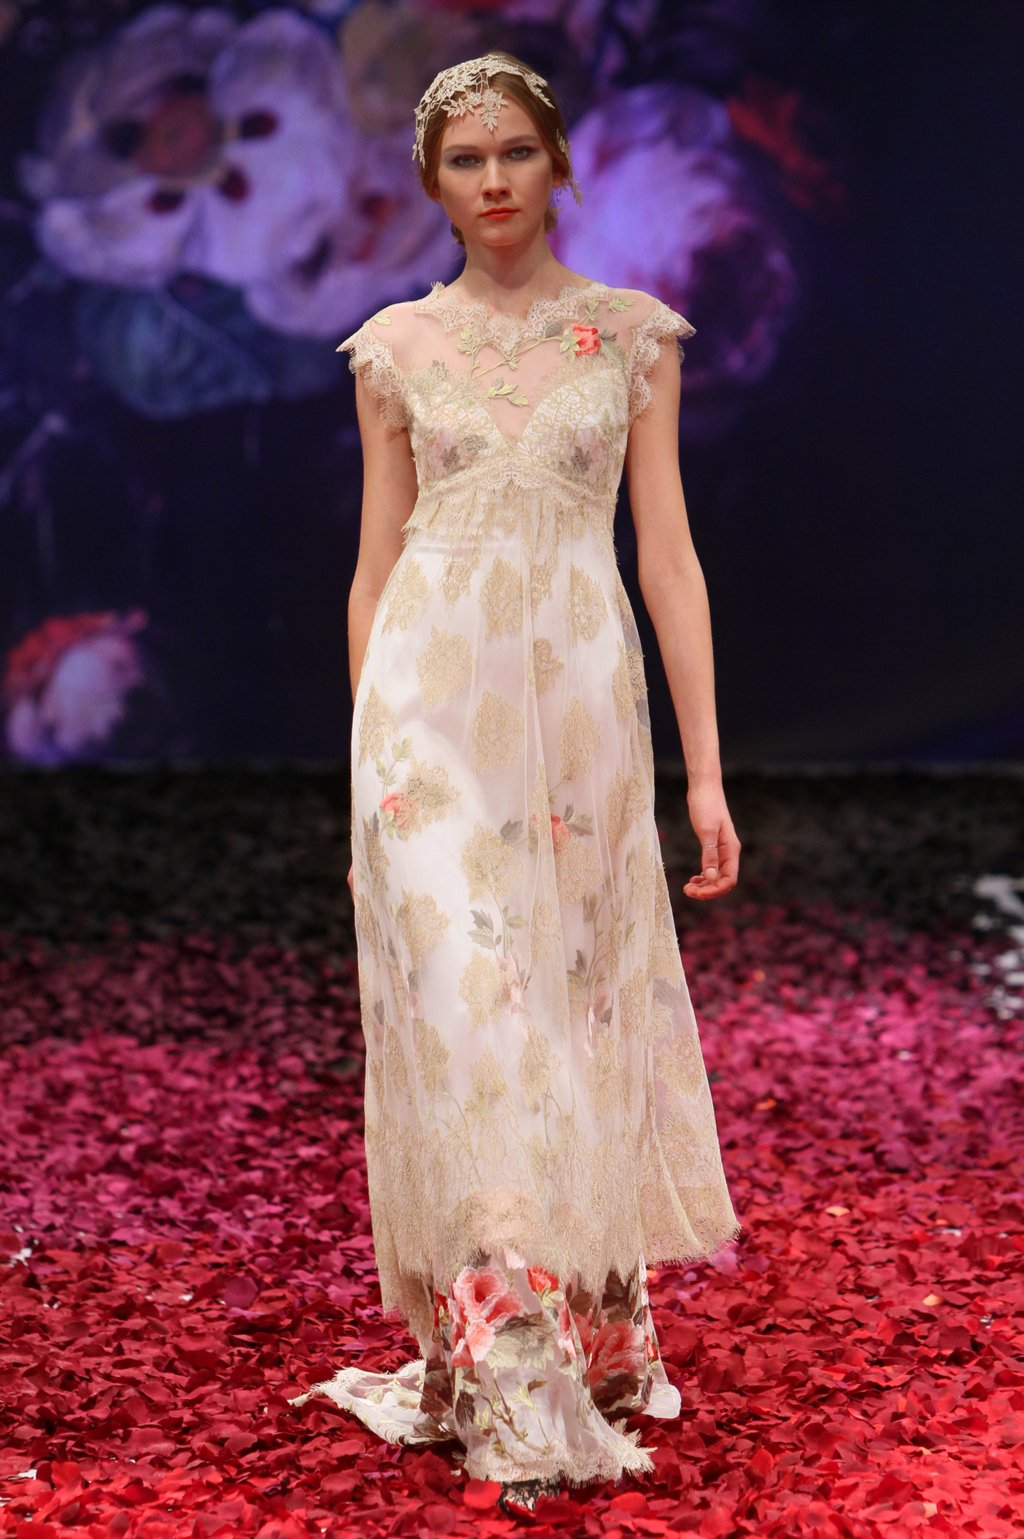 Hearts-desire-wedding-dress-by-claire-pettibone-2014-still-life-bridal-collection.full